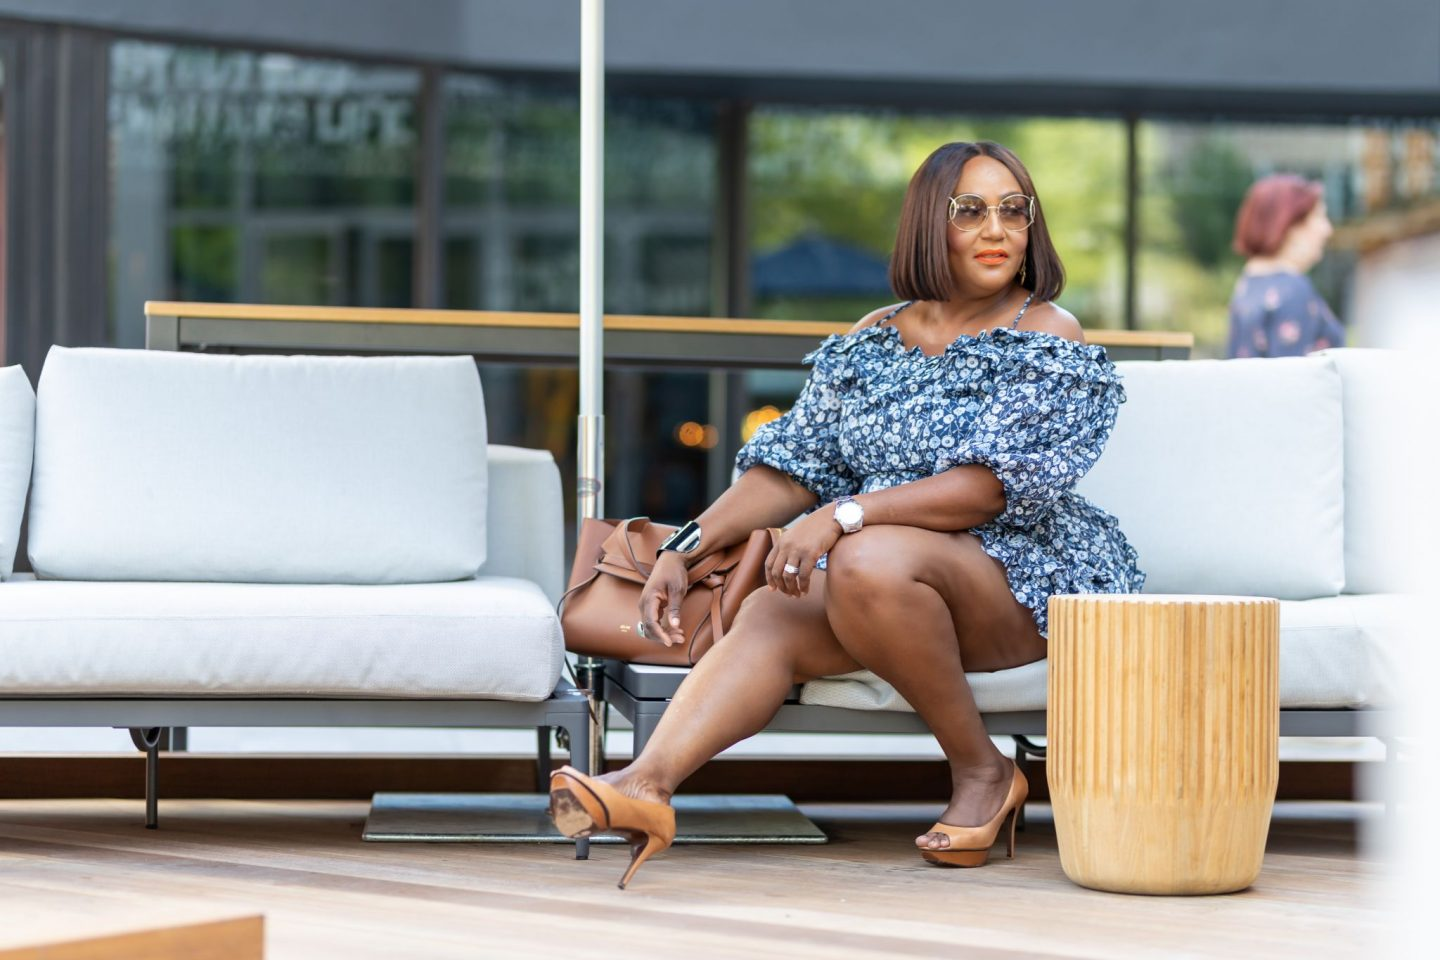 Influencer NikkiFree sitting on outdoor furniture wearing short skirt with legs exposed